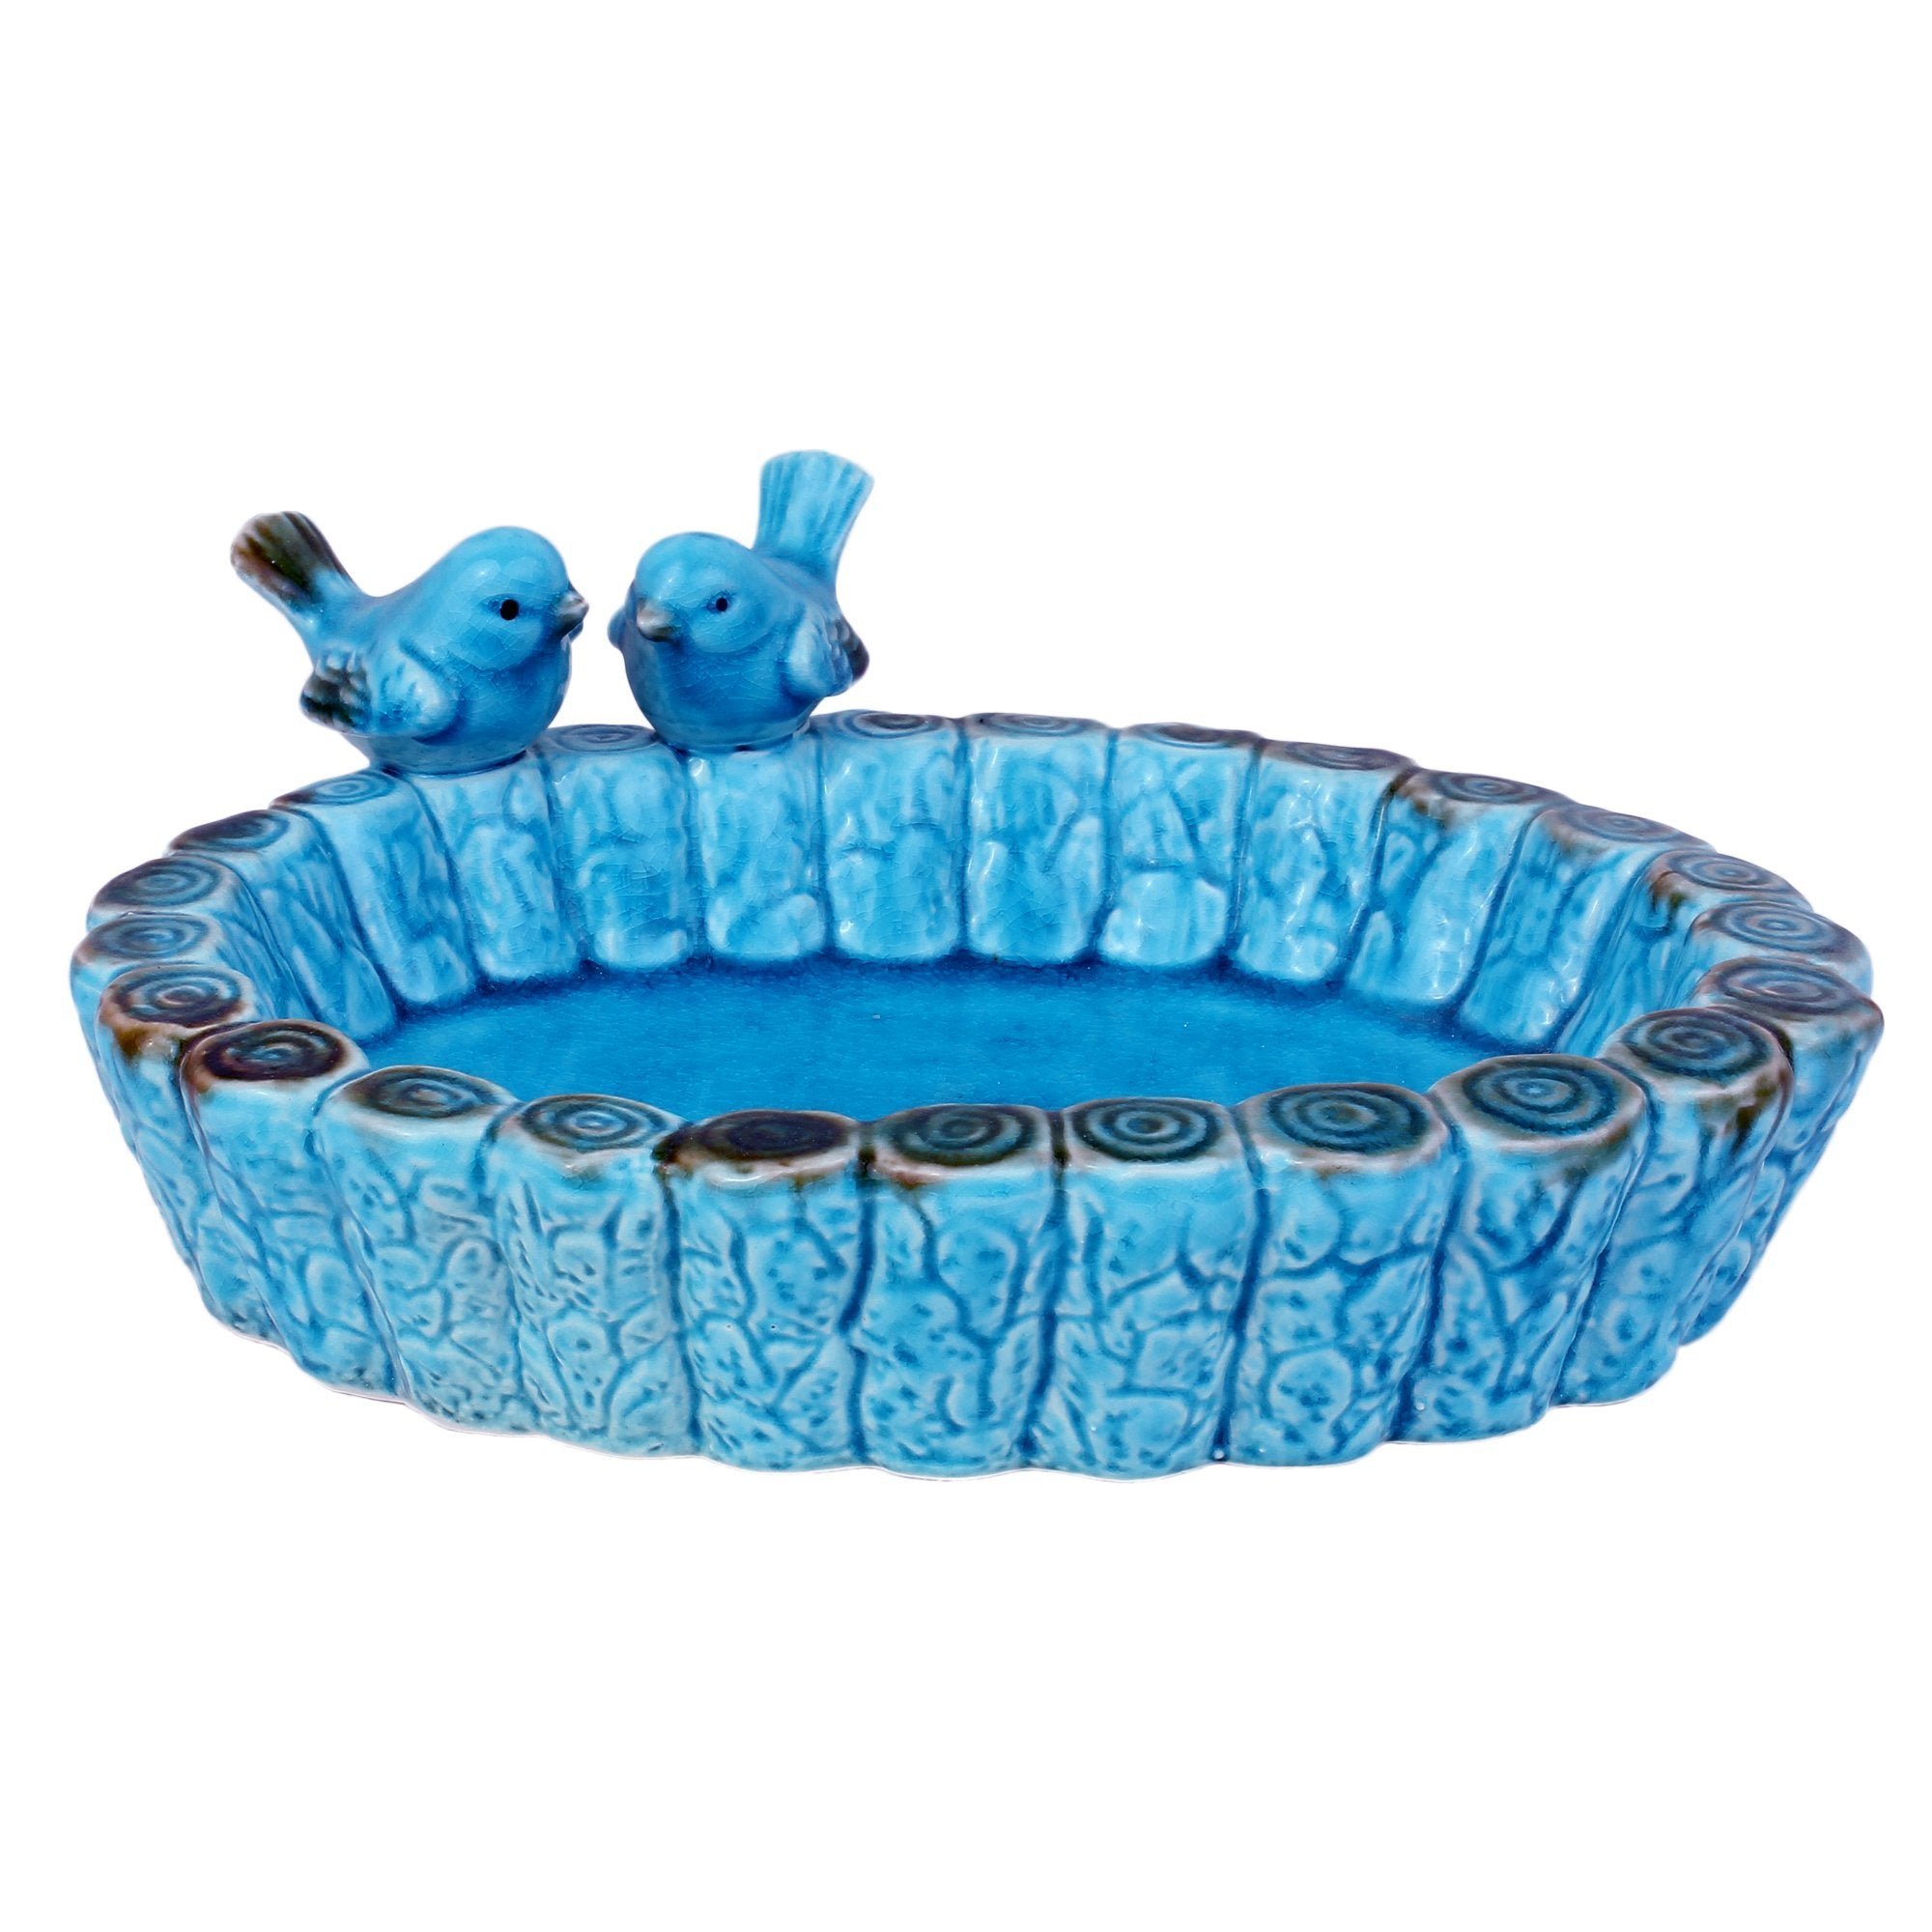 Birdies Ceramic Water Tray